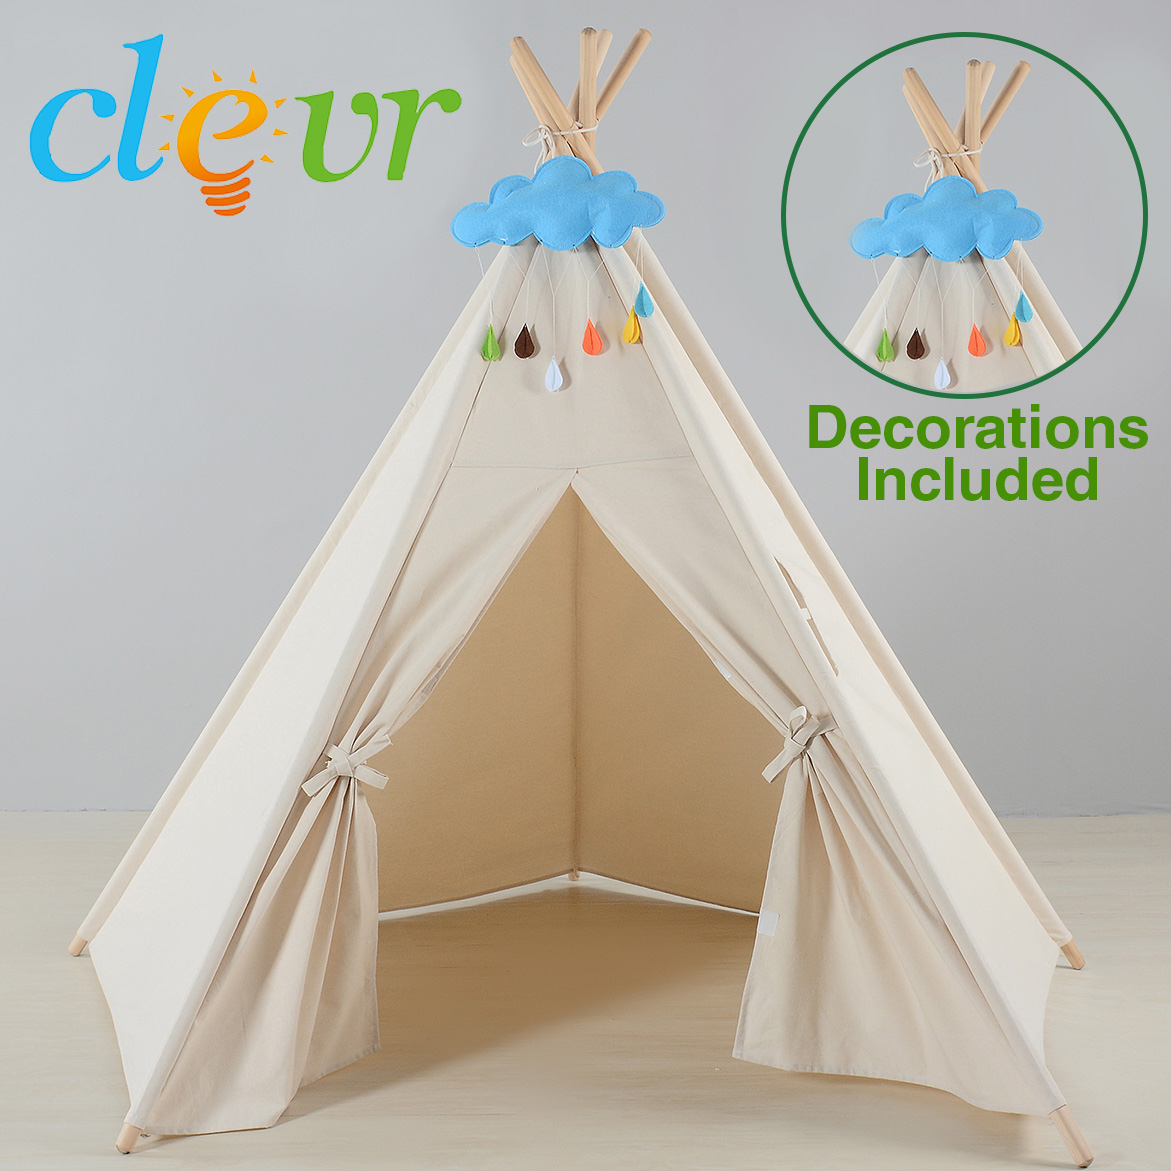 6u0027 Kids Indoor Outdoor Tent Play Teepee Playhouse Children White Blue Clouds & 6u0027 Kids Indoor Outdoor Tent Play Teepee Playhouse Children White ...